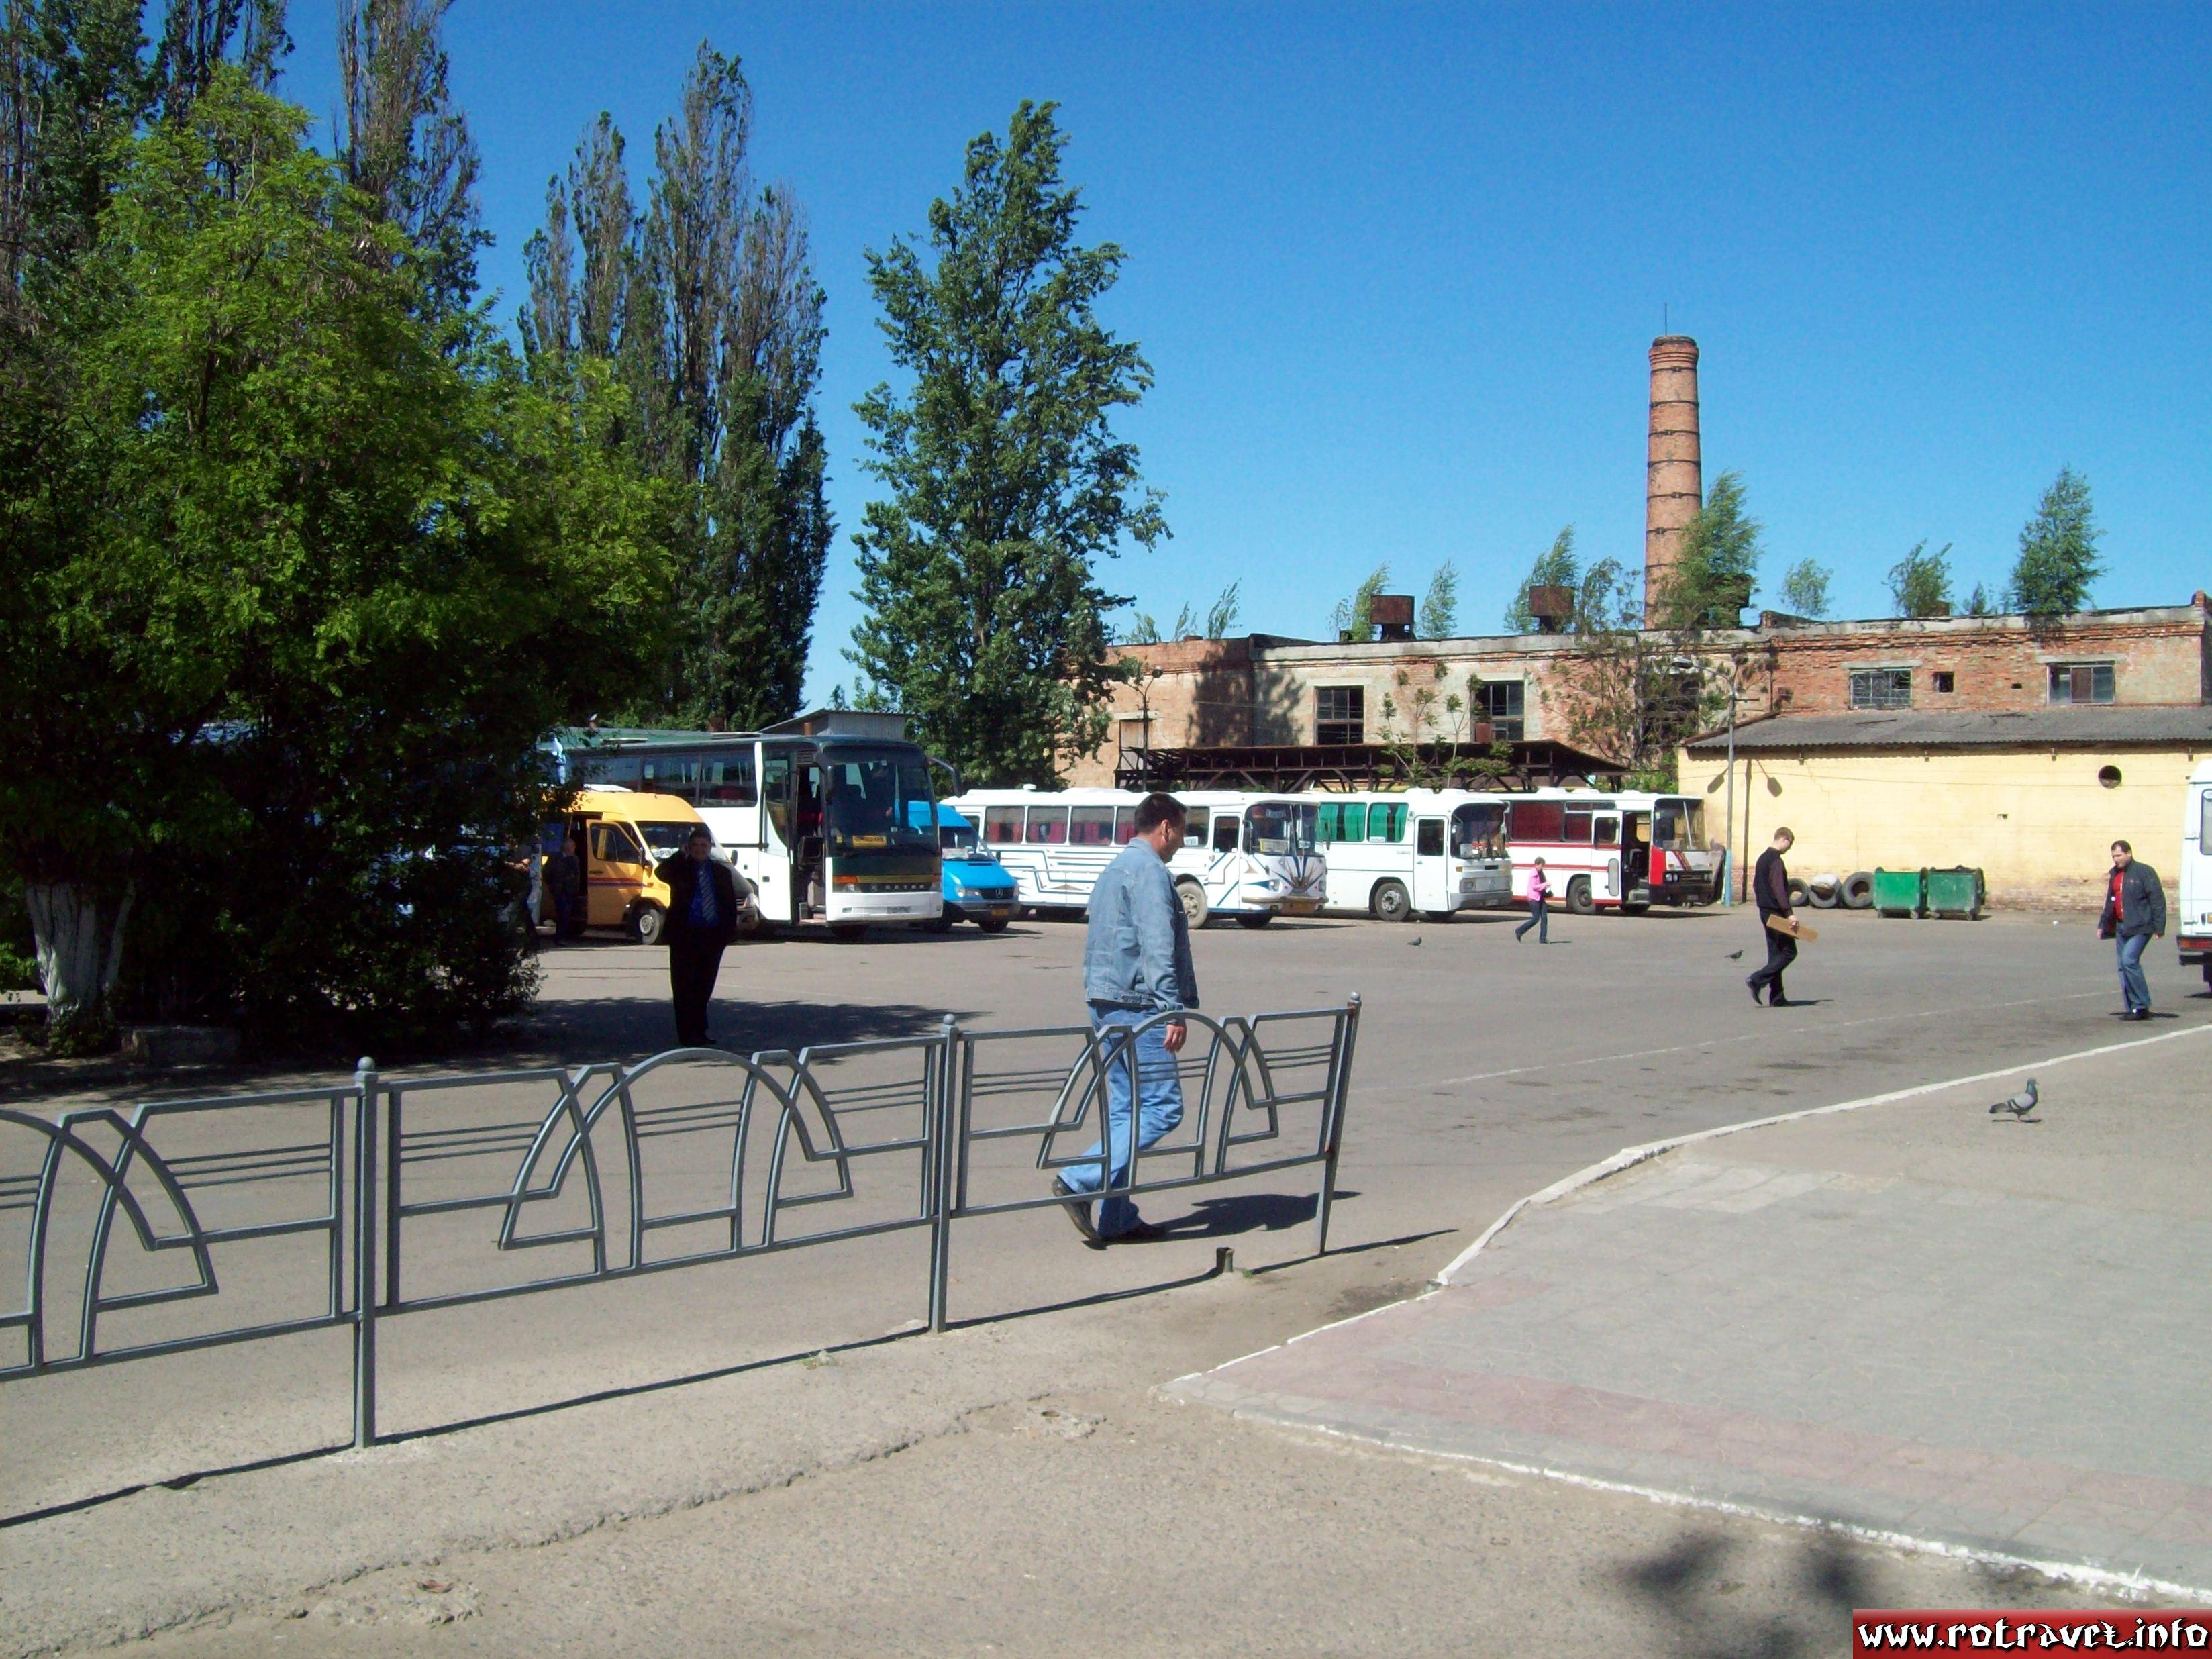 Old soviet bus station